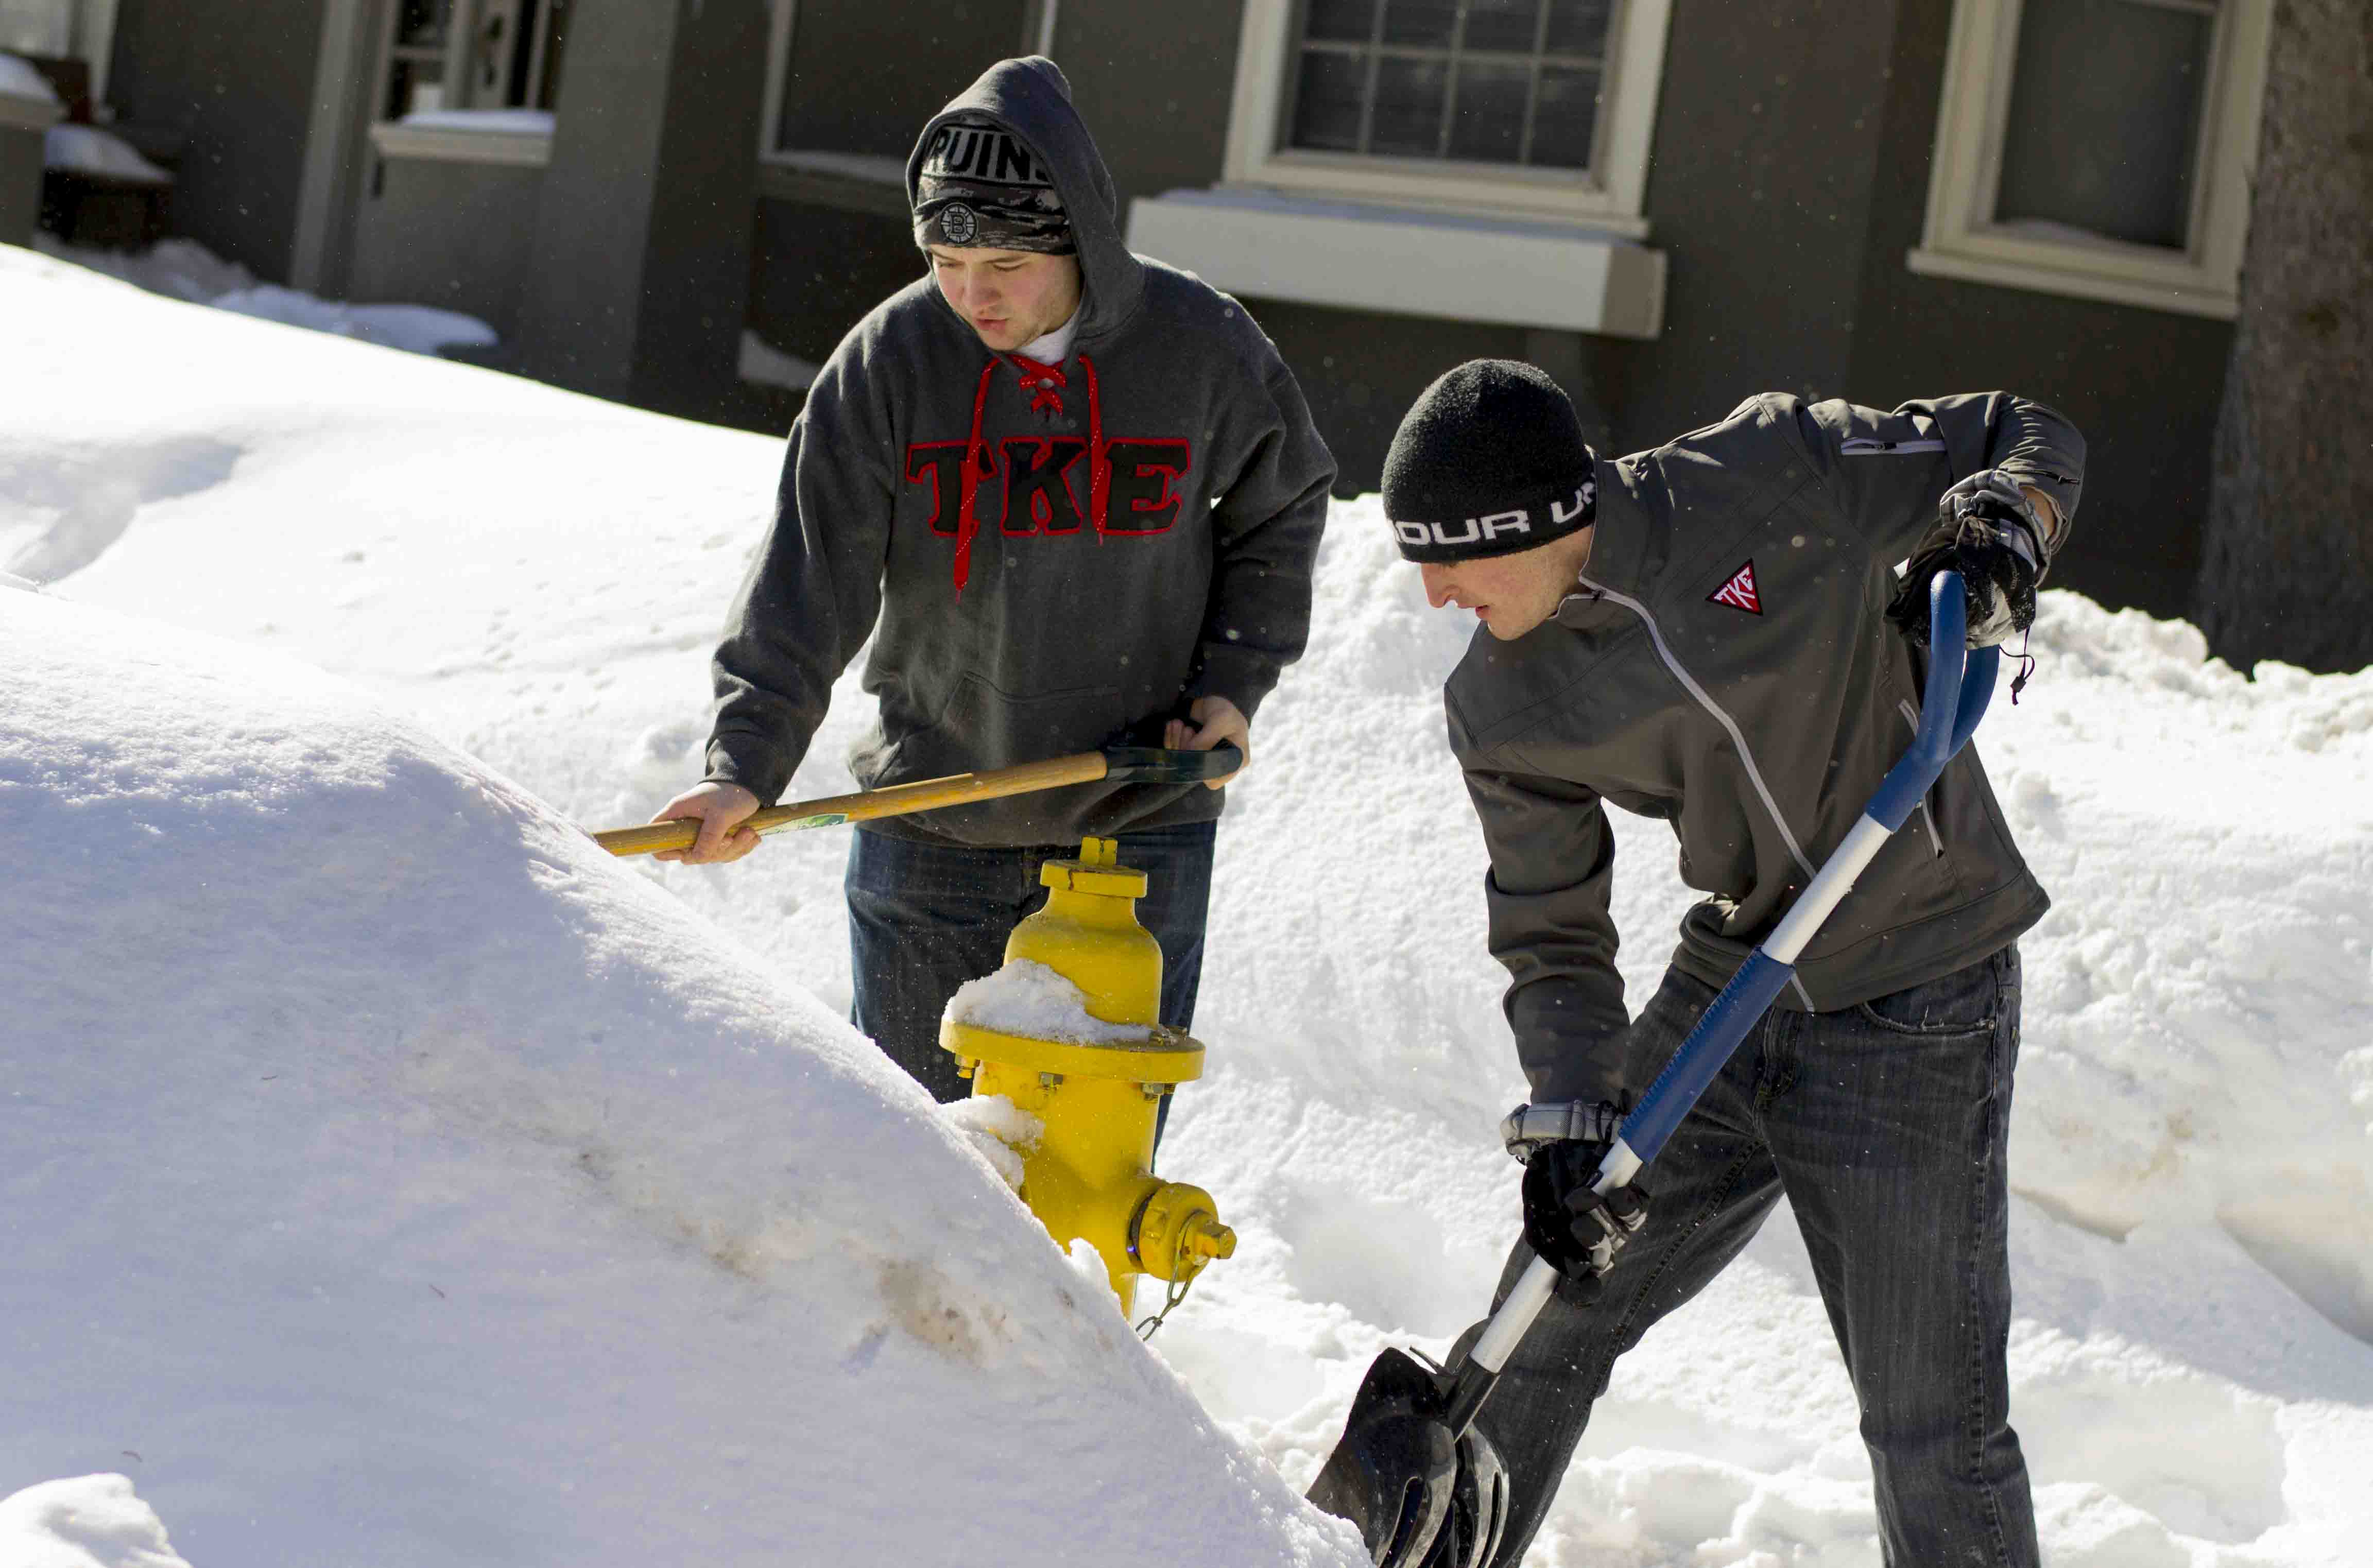 Students shoveling after snow storm